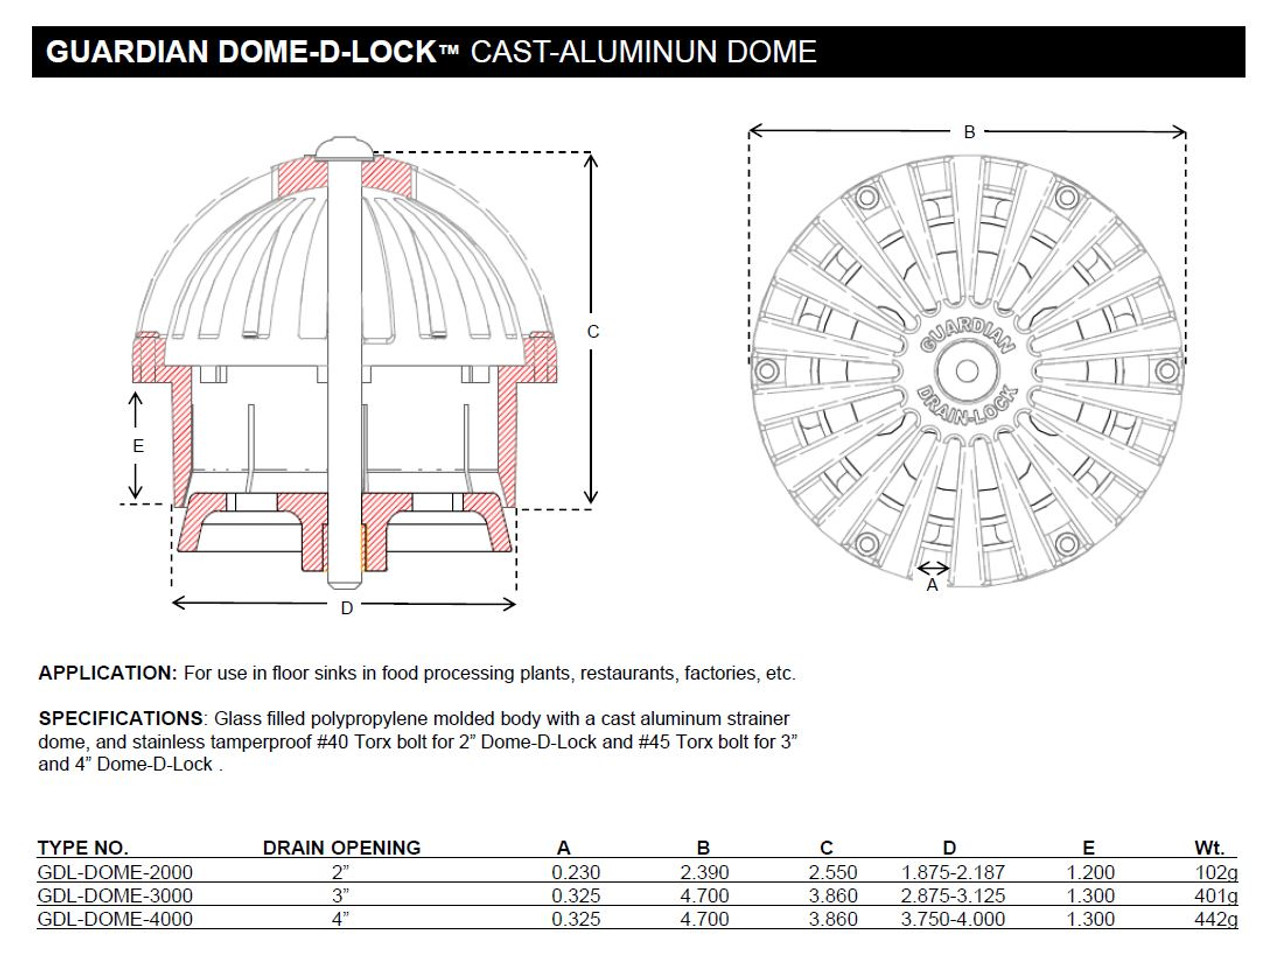 Spec sheet for Guardian Dome-D-Lock 3 inch